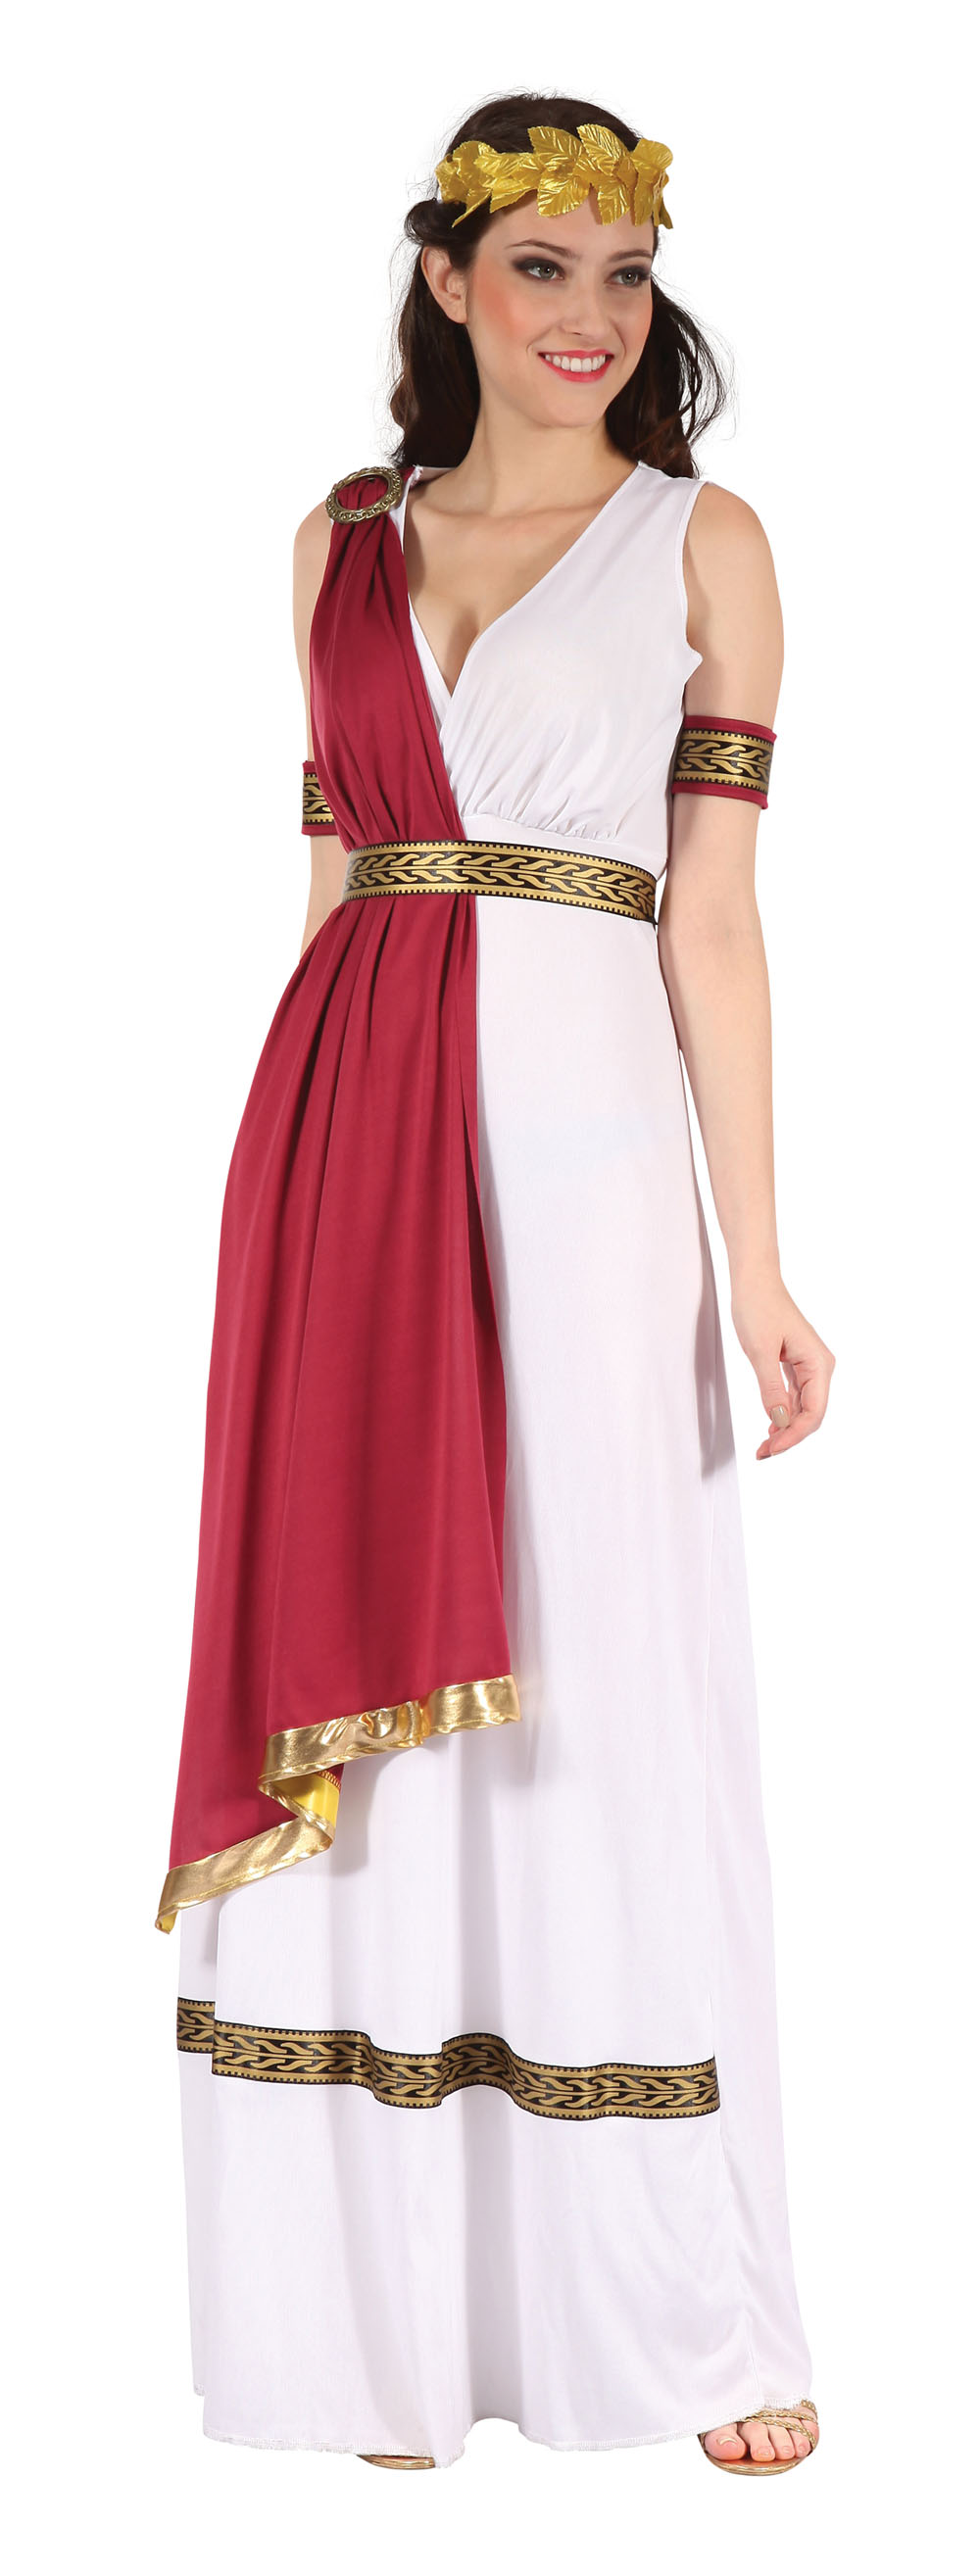 Ladies White & Red Greek Goddess Fancy Dress Costume Greecian Outfit UK 10-14